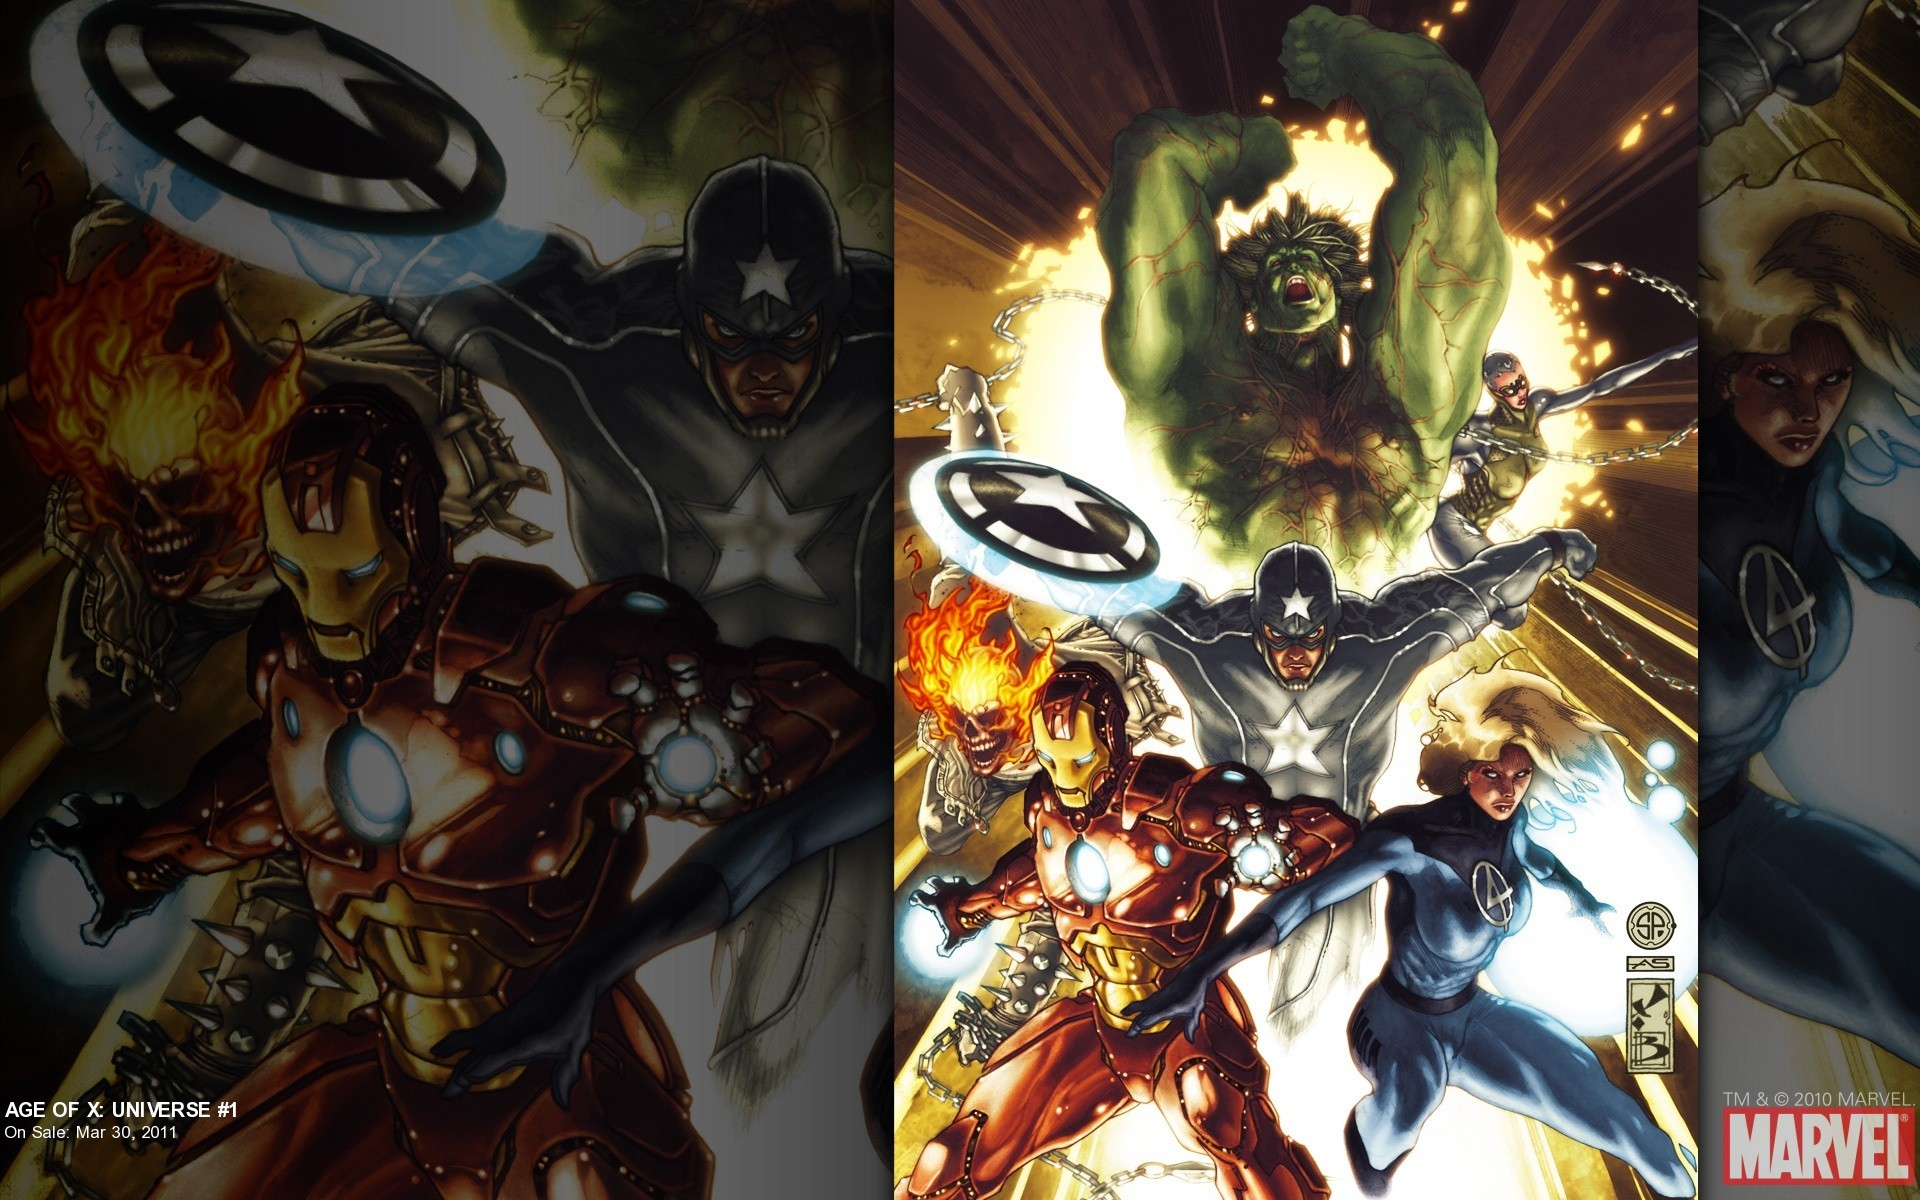 dc univers vs marvel images Marvel HD wallpaper and background photos